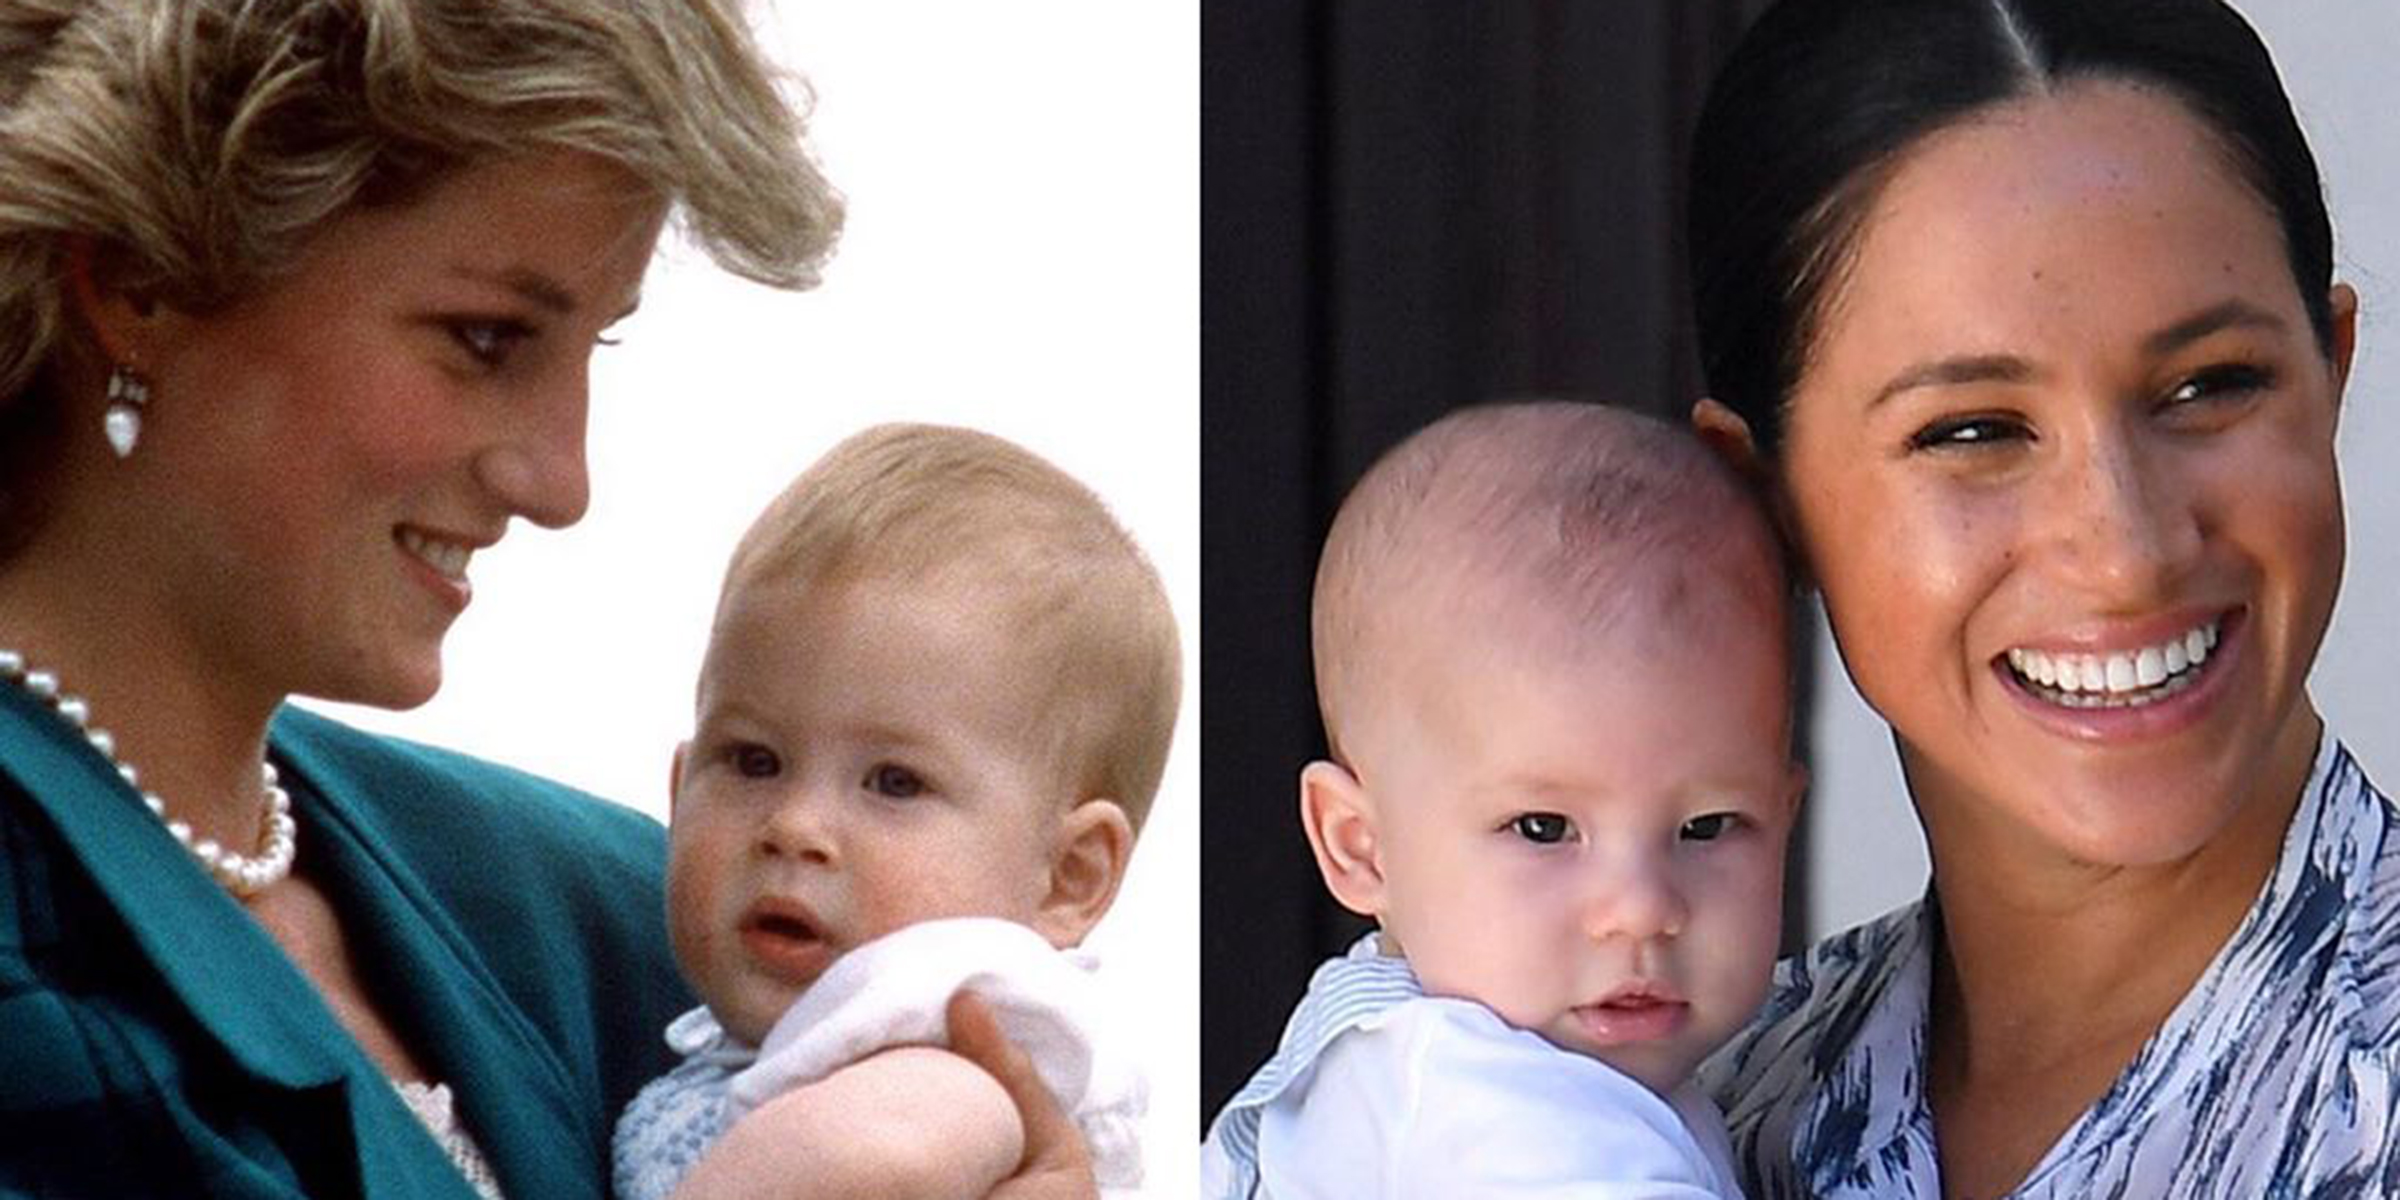 baby archie looks like the spitting image of prince harry in side by side pic prince harry in side by side pic